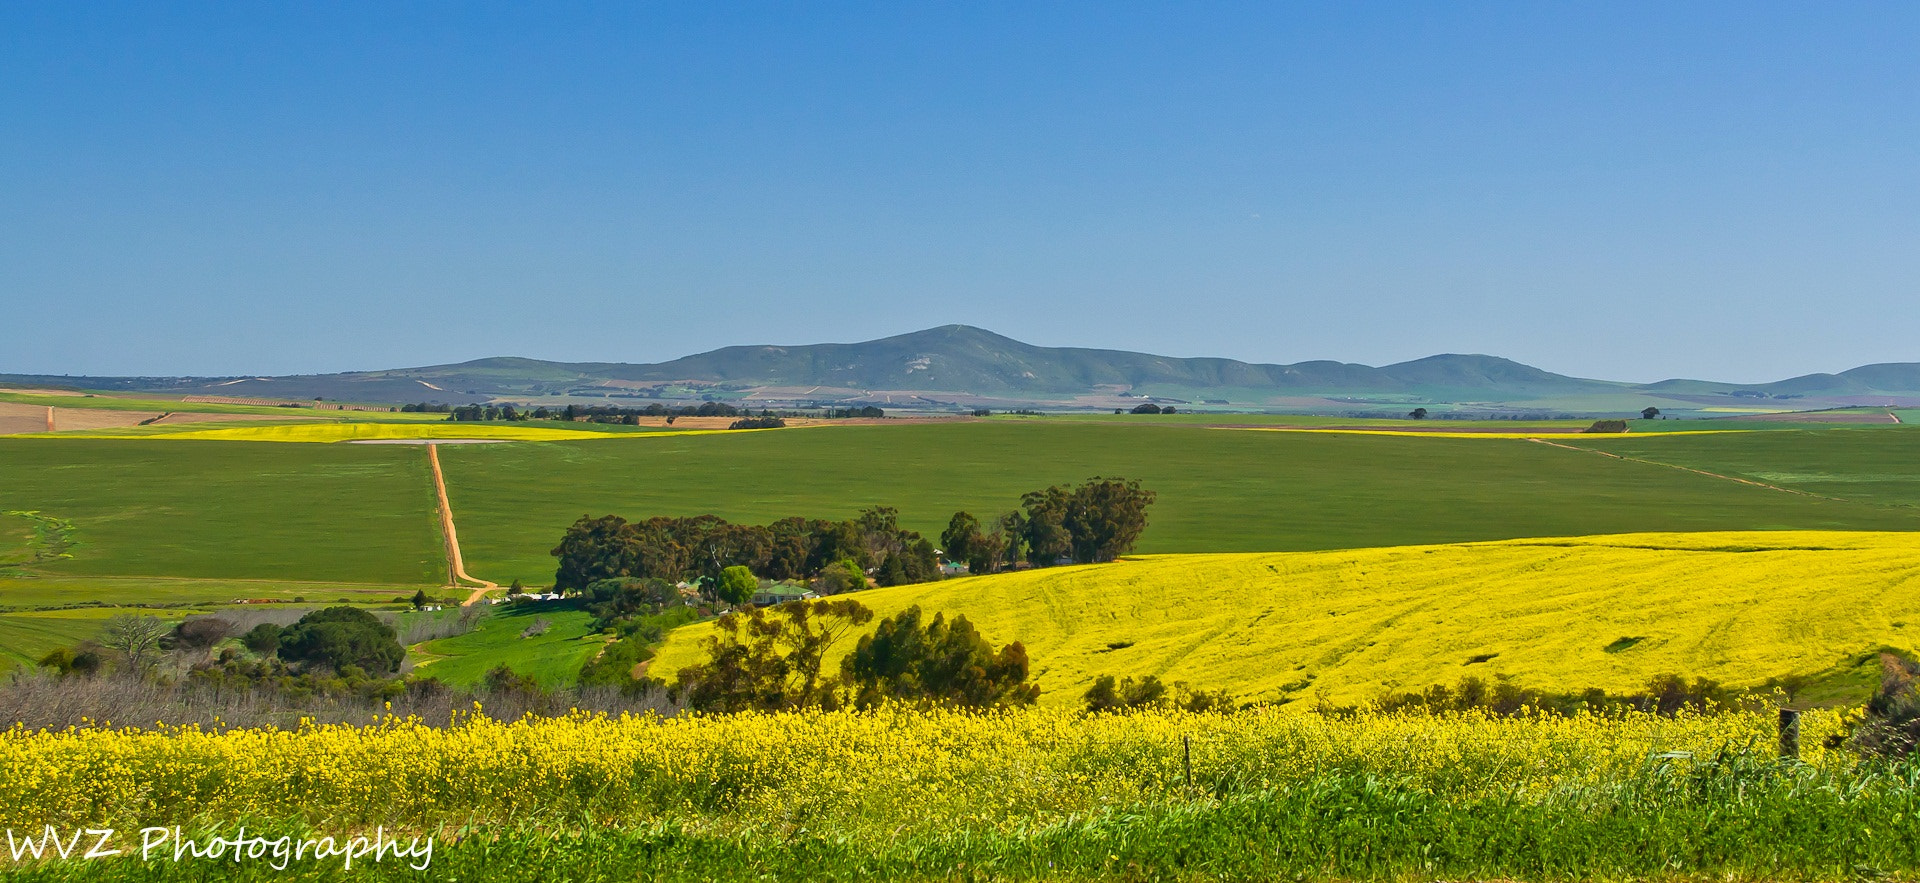 Photograph Canola field by Wendy Van Zyl on 500px